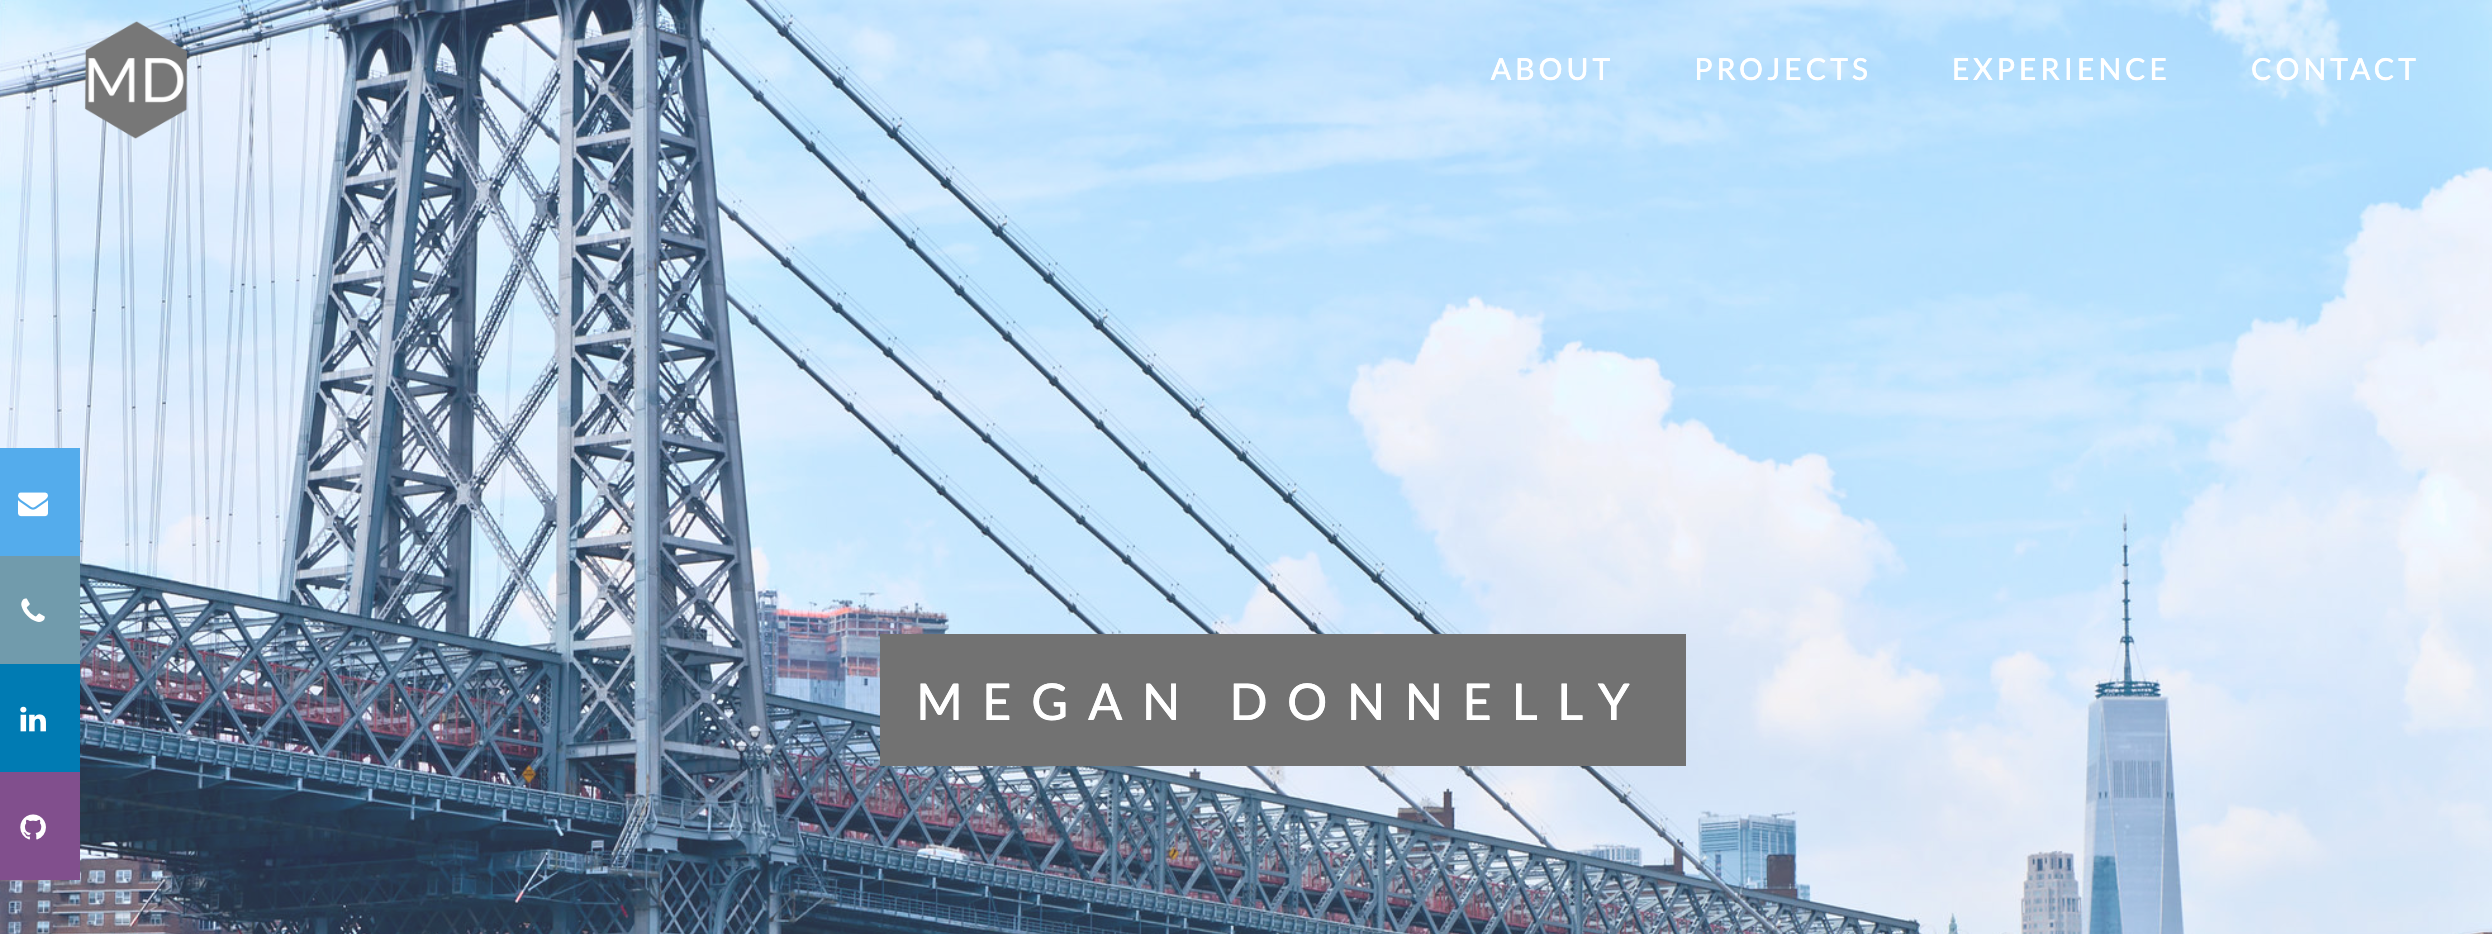 Megan Donnelly portfolio site